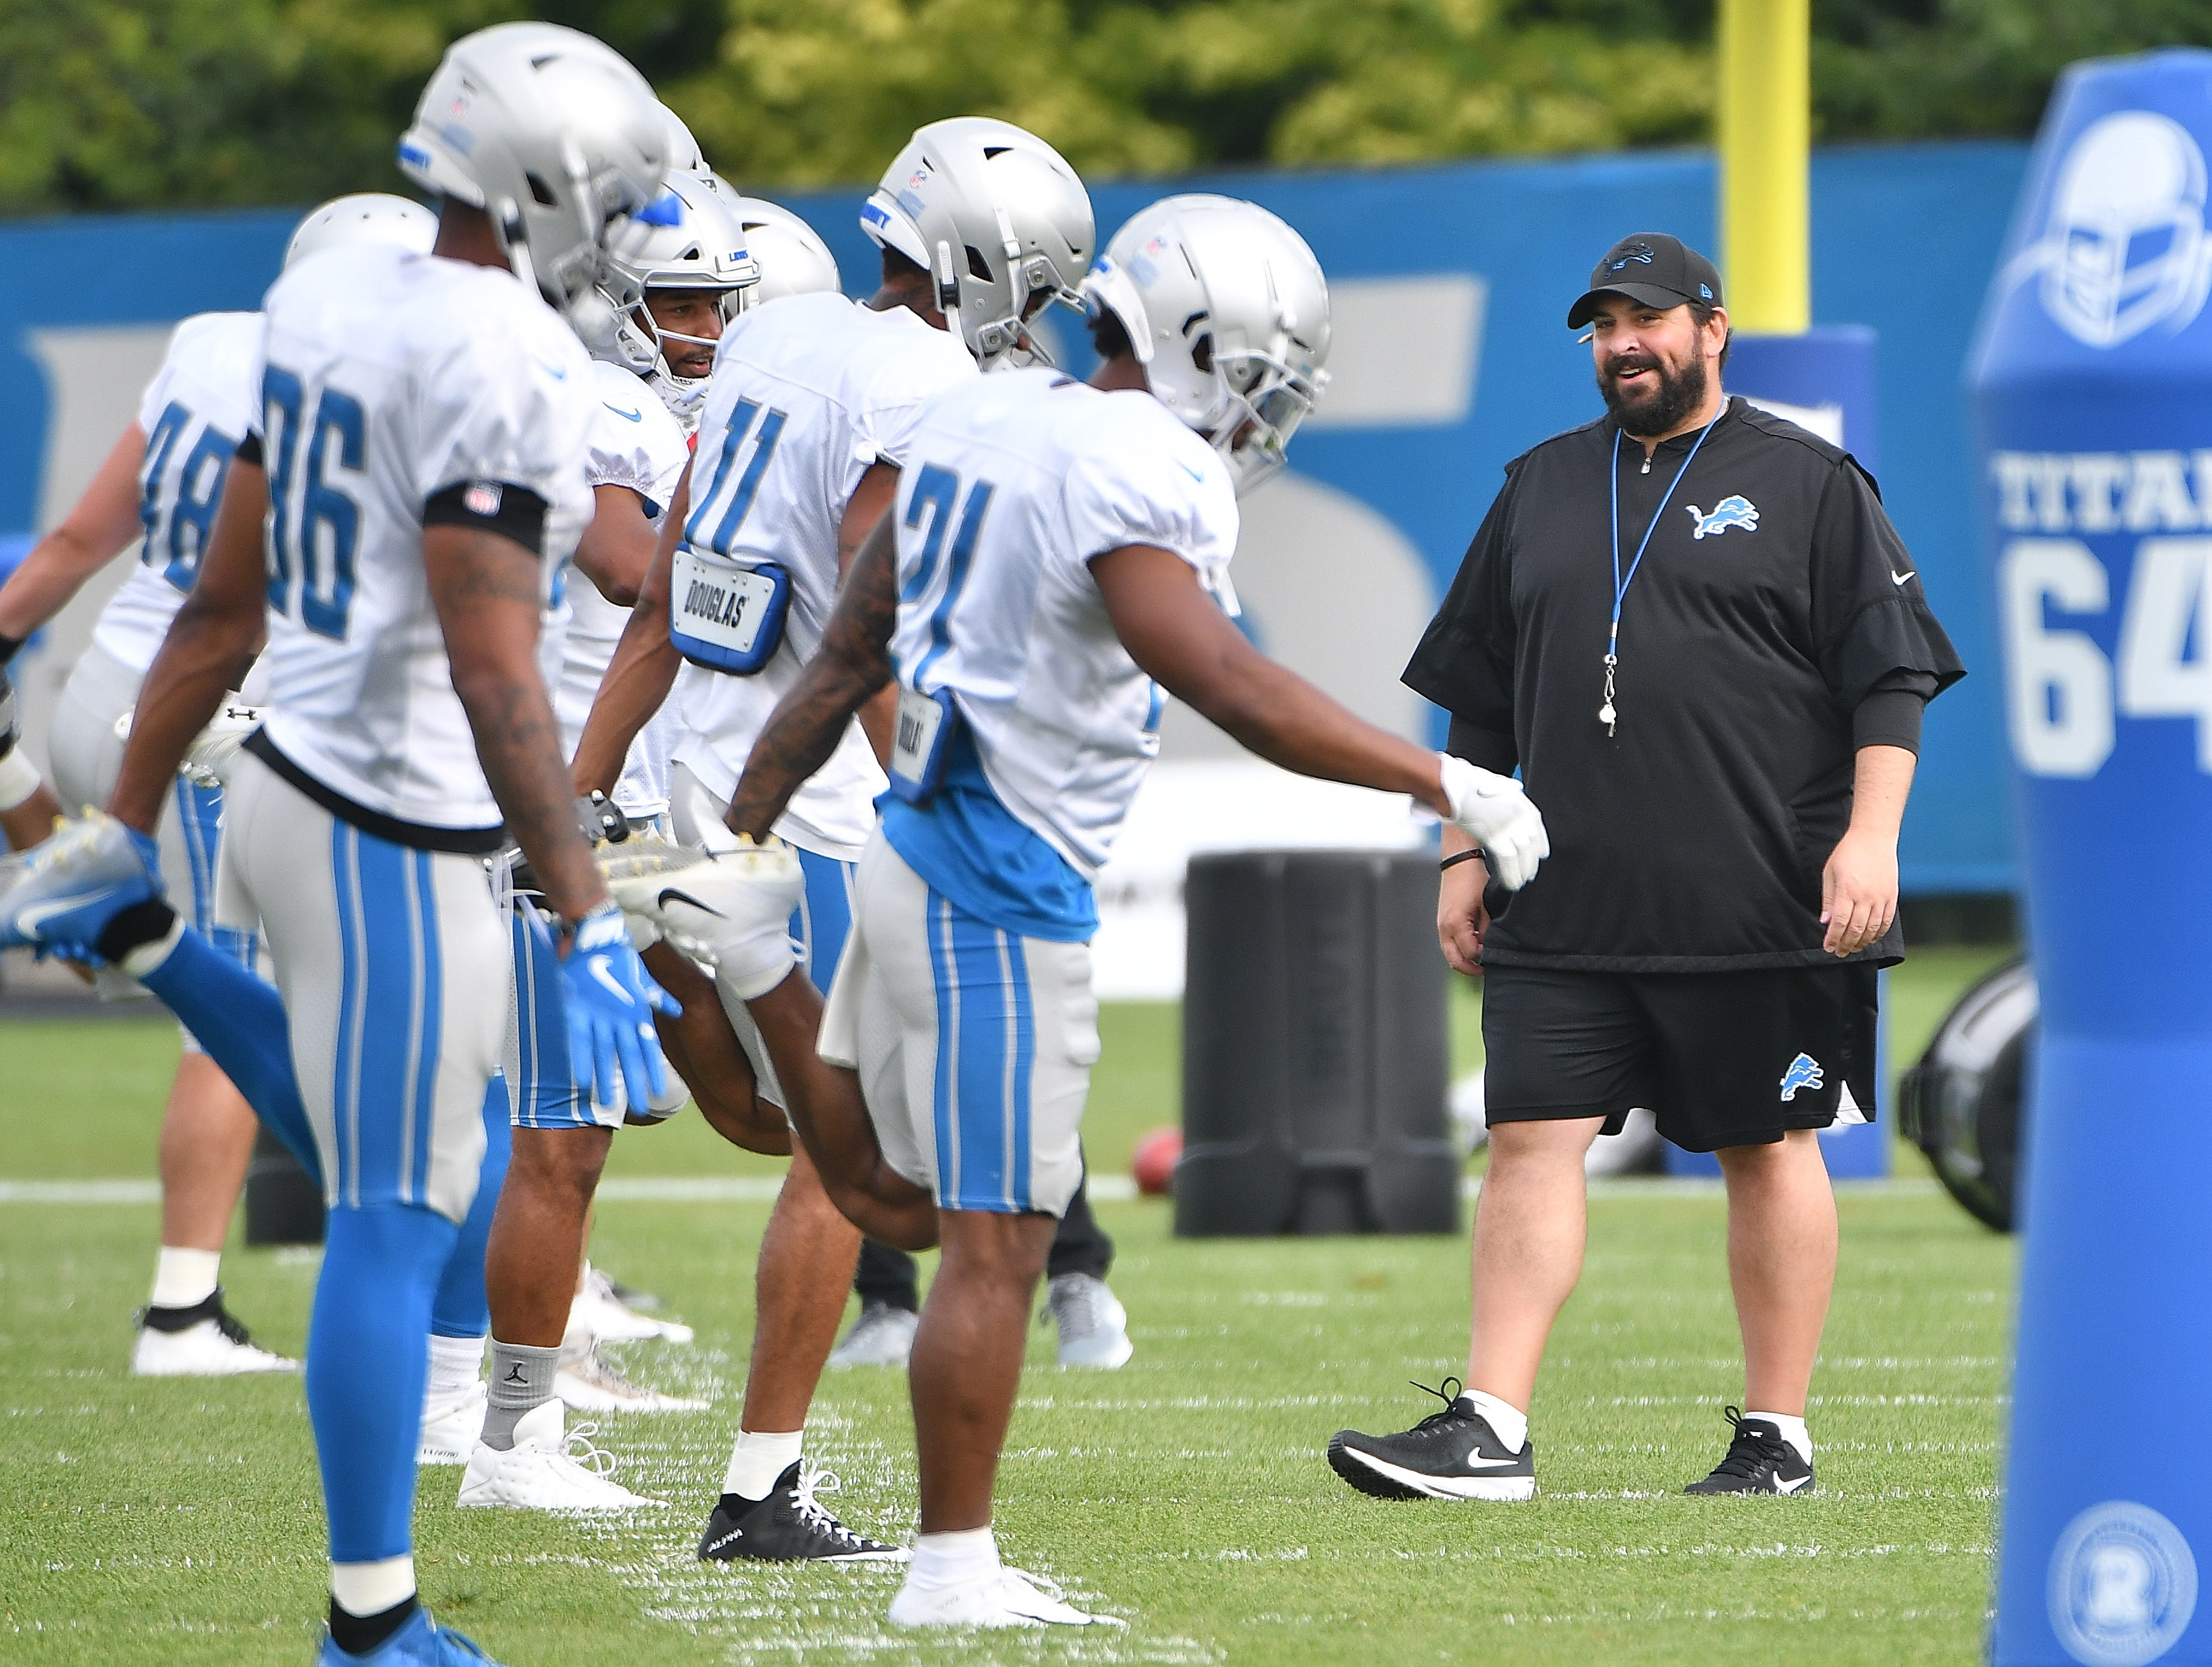 Lions head coach Matt Patricia chats with players as they go through stretching early Wednesday morning at training camp.